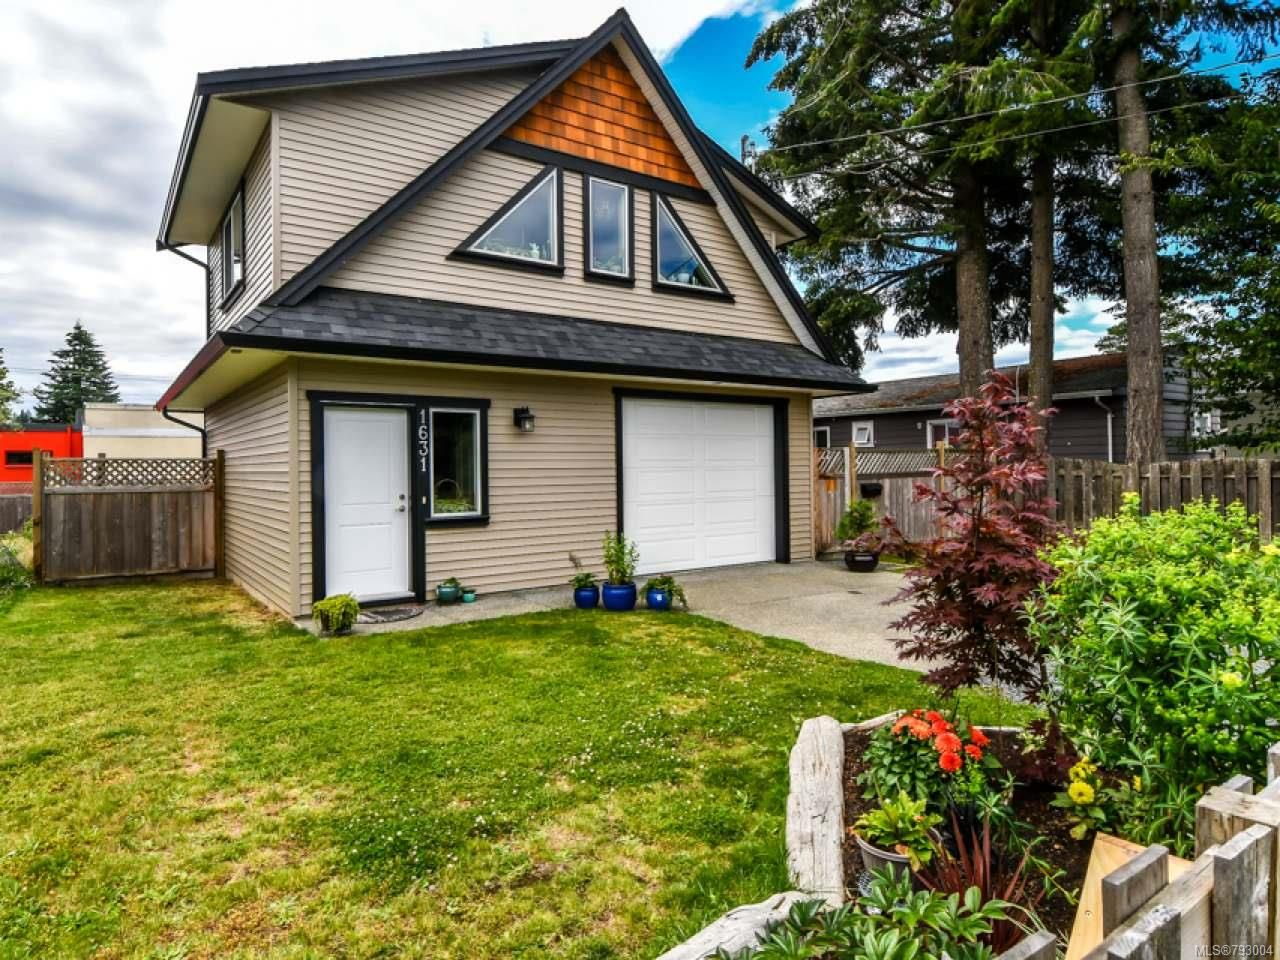 Main Photo: 1631 19th Ave in CAMPBELL RIVER: CR Campbellton House for sale (Campbell River)  : MLS®# 793004